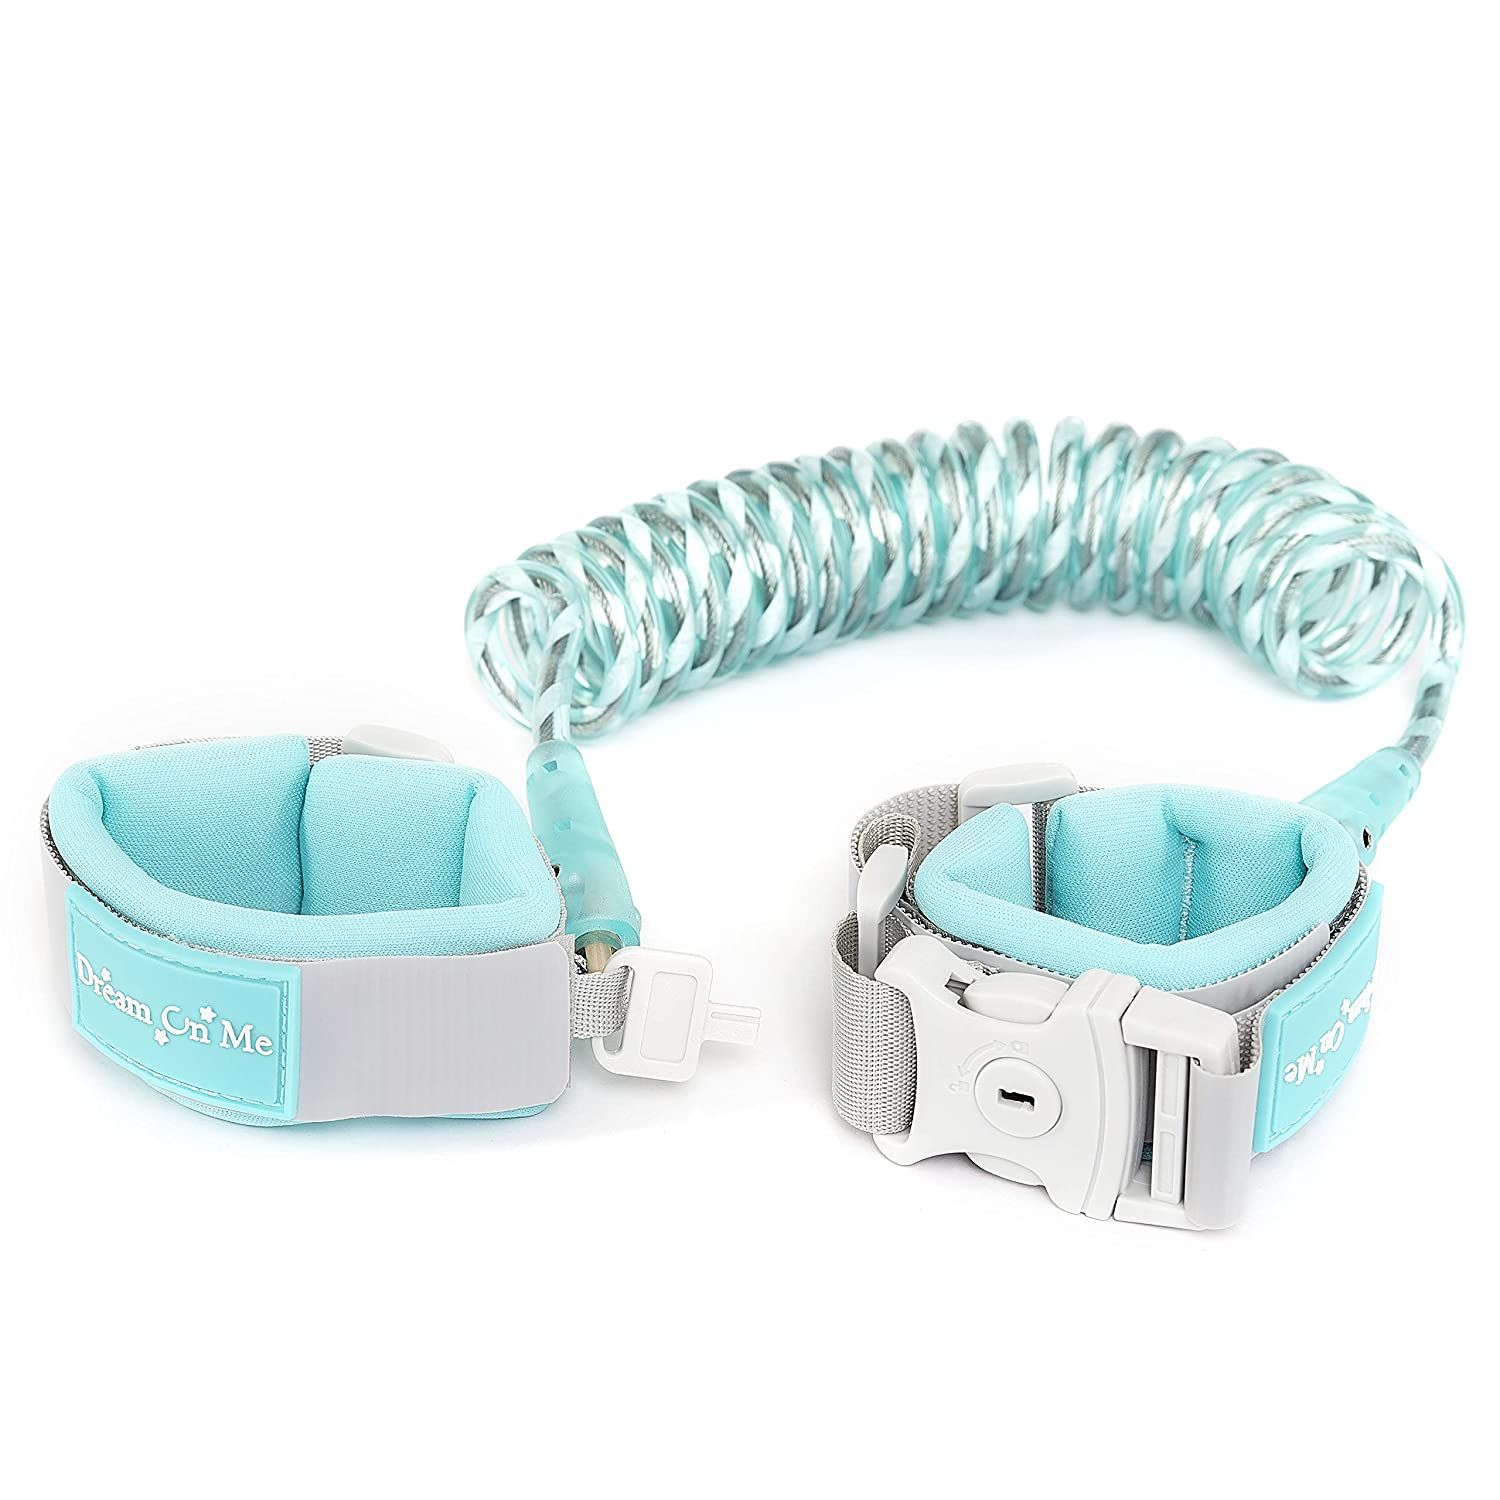 Dream On Me Anti-Lost Wrist Link with Lock & Key in Blue